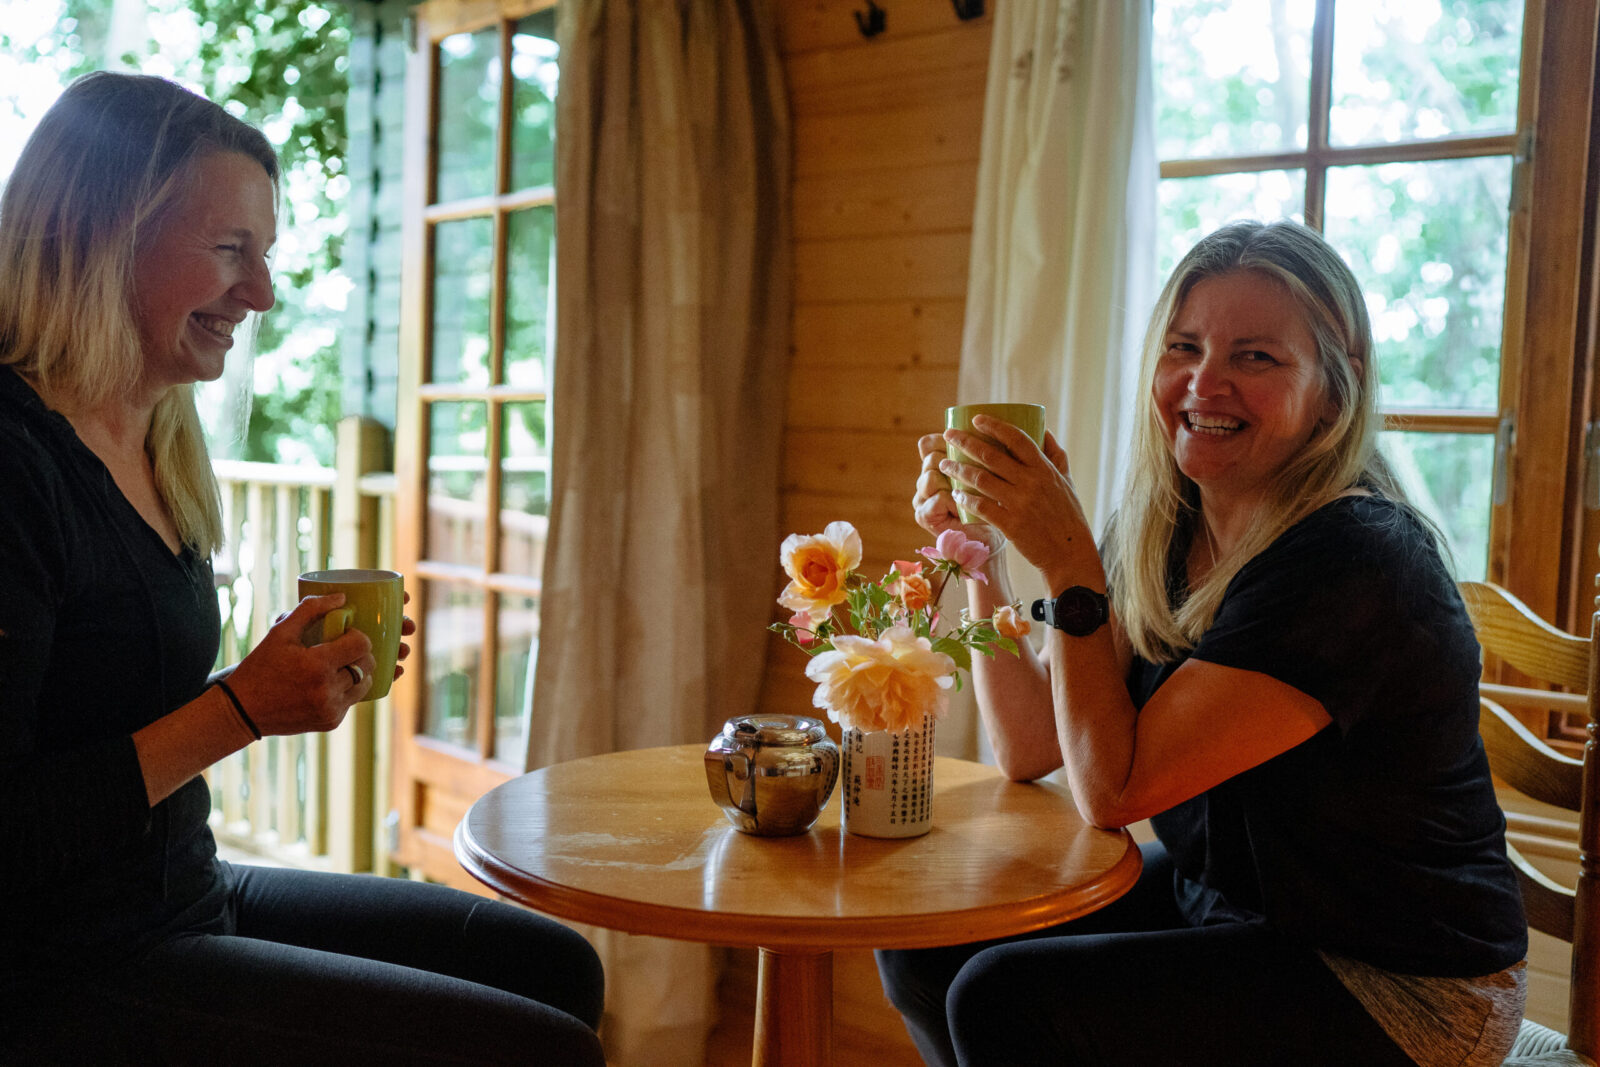 Two women laughing over coffee while on one of our yoga retreats in one of our cabins.